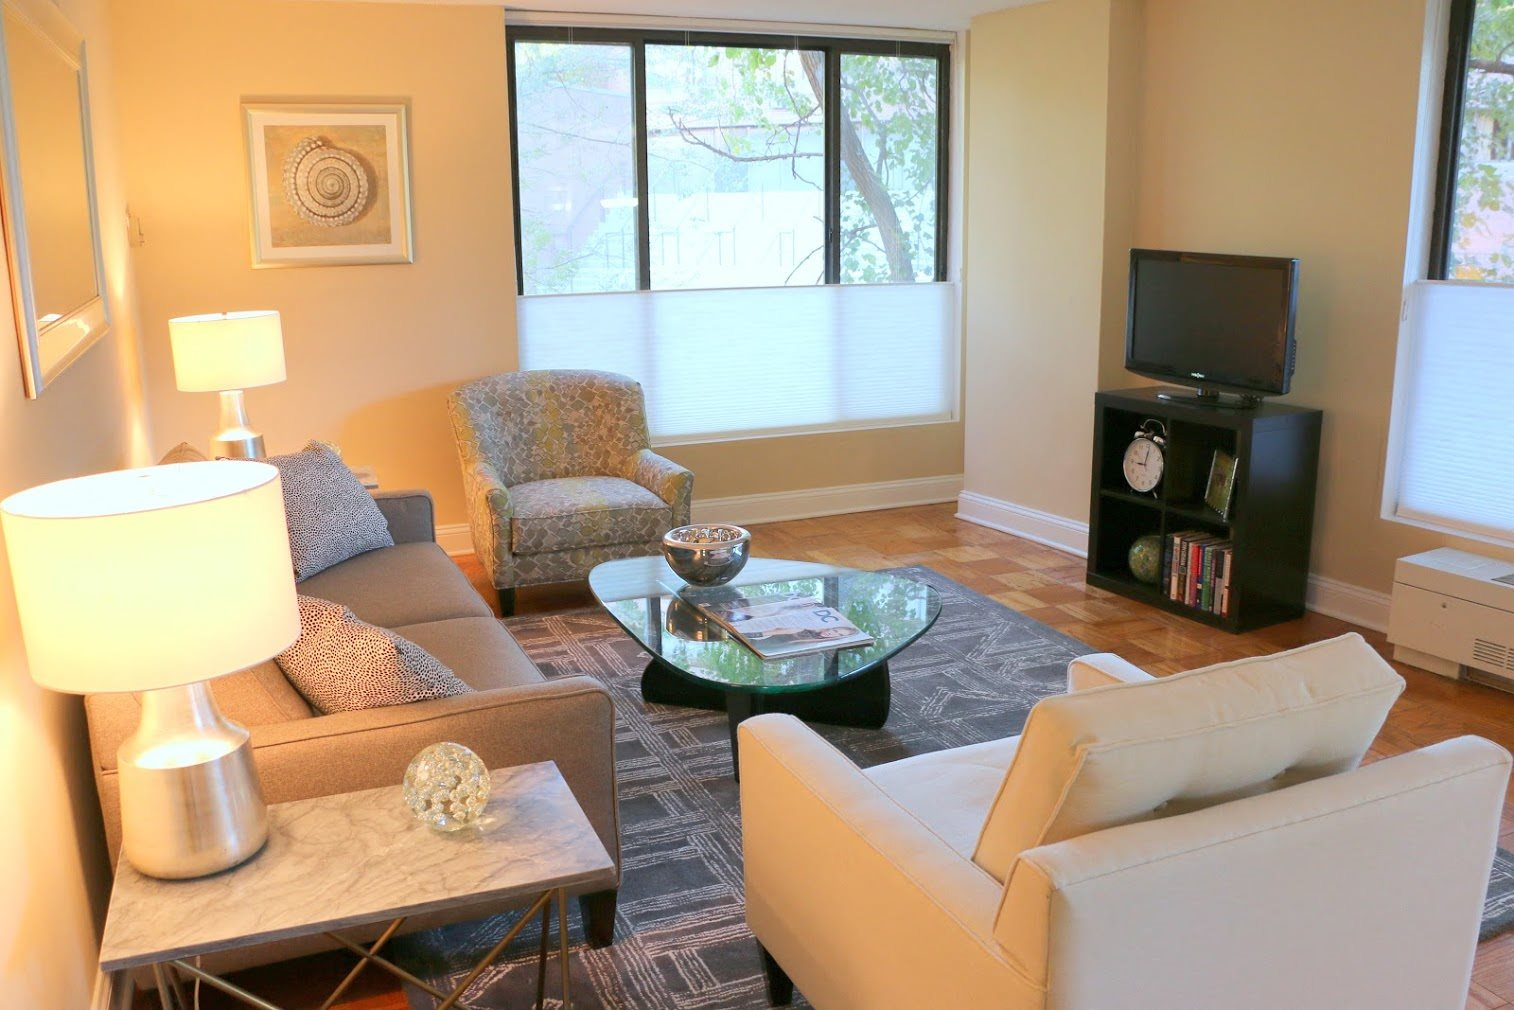 Studio, One Bedroom and Two Bedroom Apartments at Calvert House, Washington DC